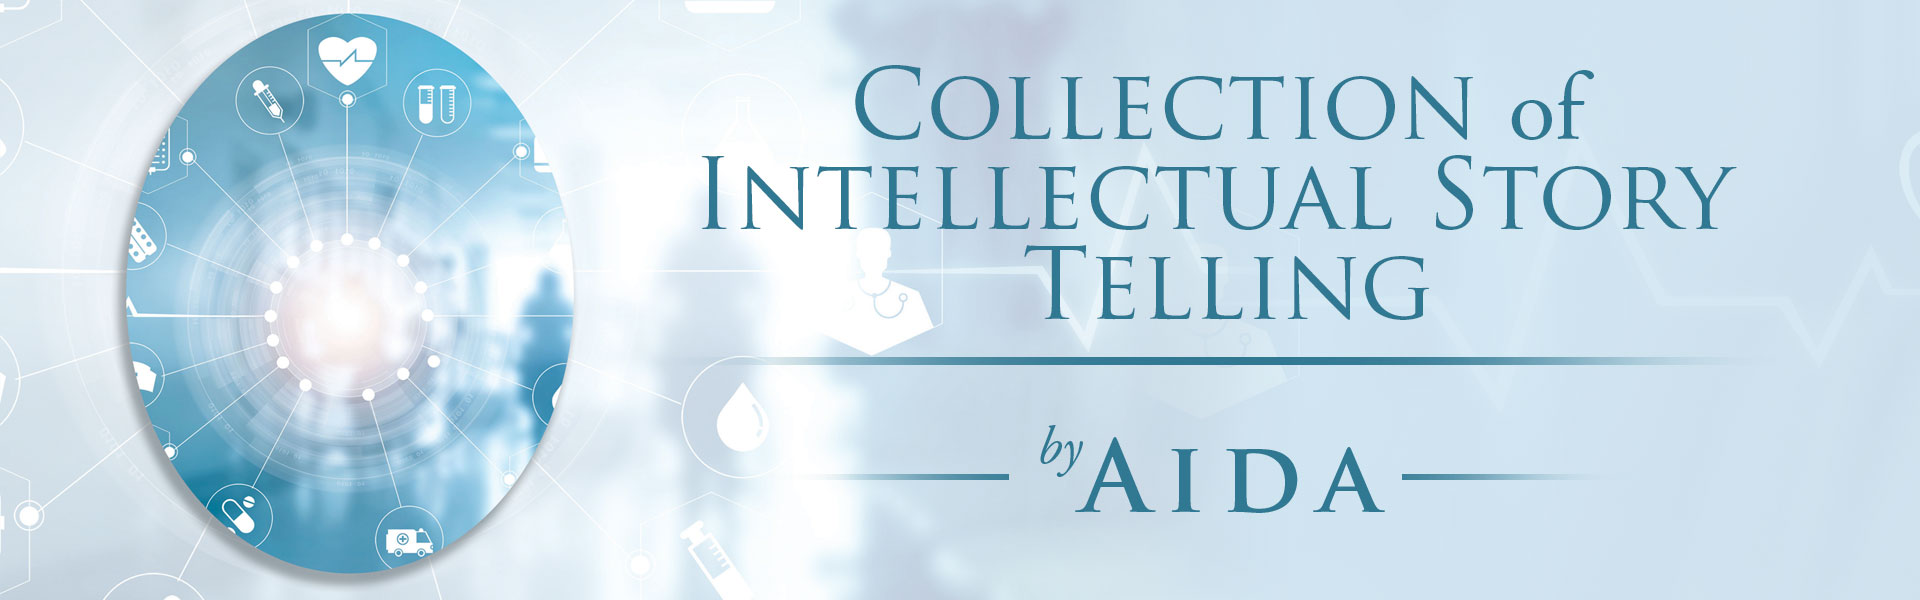 Collection of Intellectual Story Telling